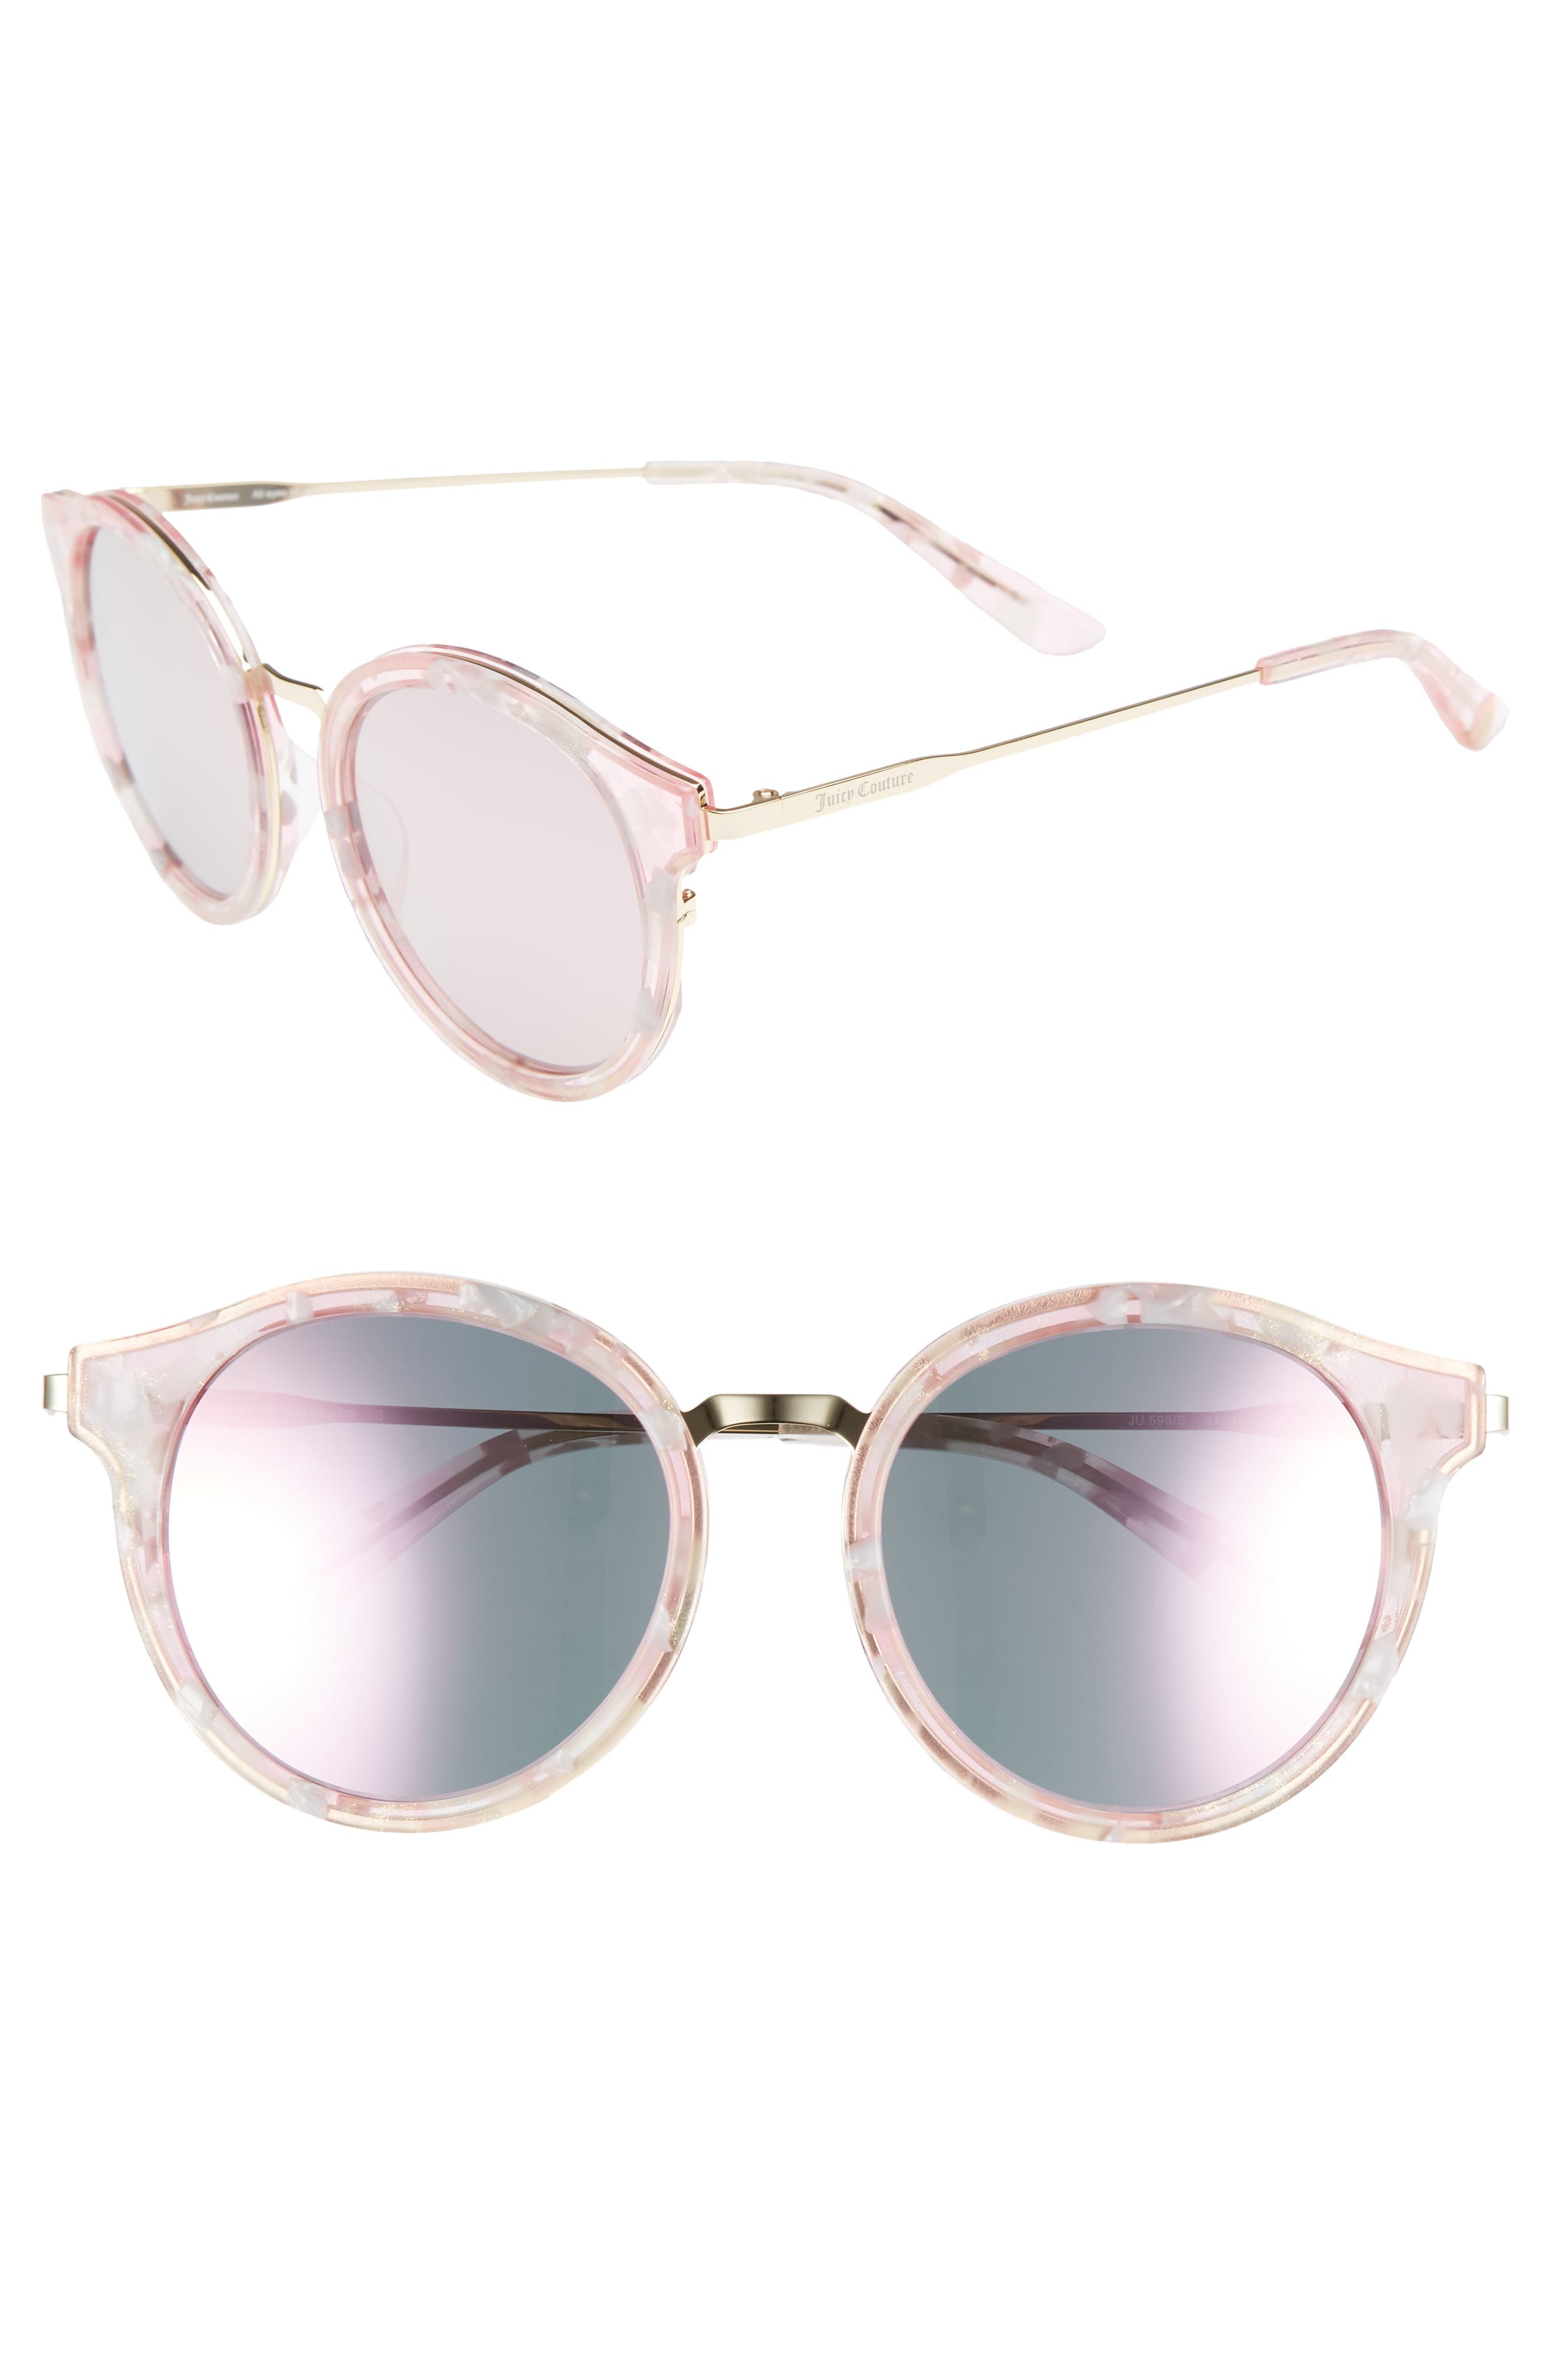 JUICY COUTURE 52MM ROUND SUNGLASSES - PINK/ GOLD